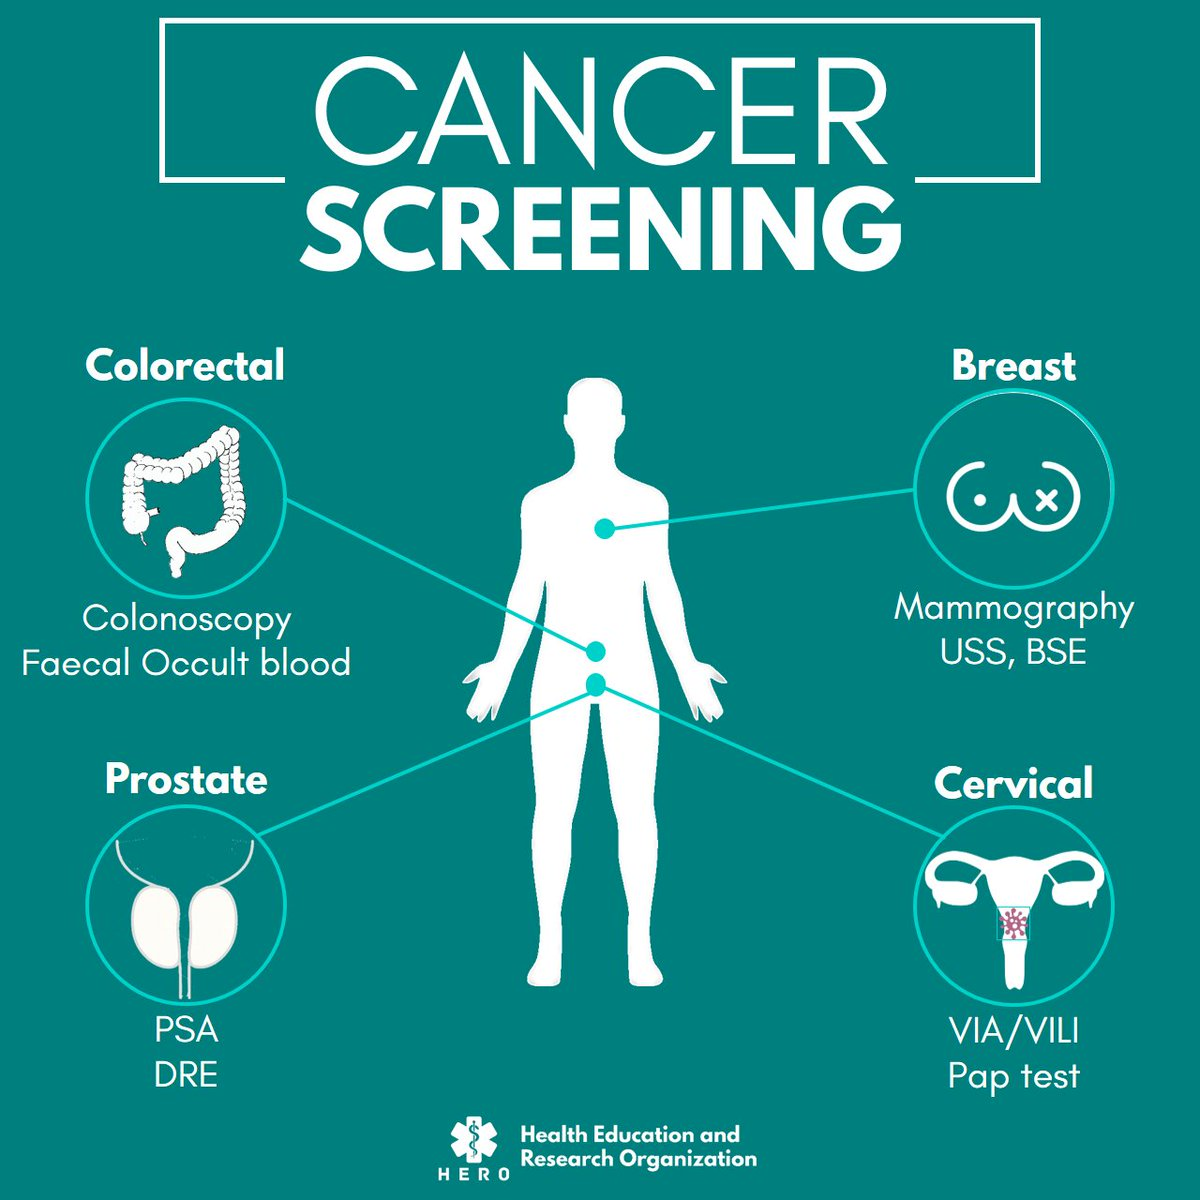 Hero Cameroon Auf Twitter Hello People Dyk Screening Is Checking Your Body For A Disease Before Symptoms Appear Cancers For Which Screening Has Proven To Be Effective Include Breast Cancer Prostate Cancer